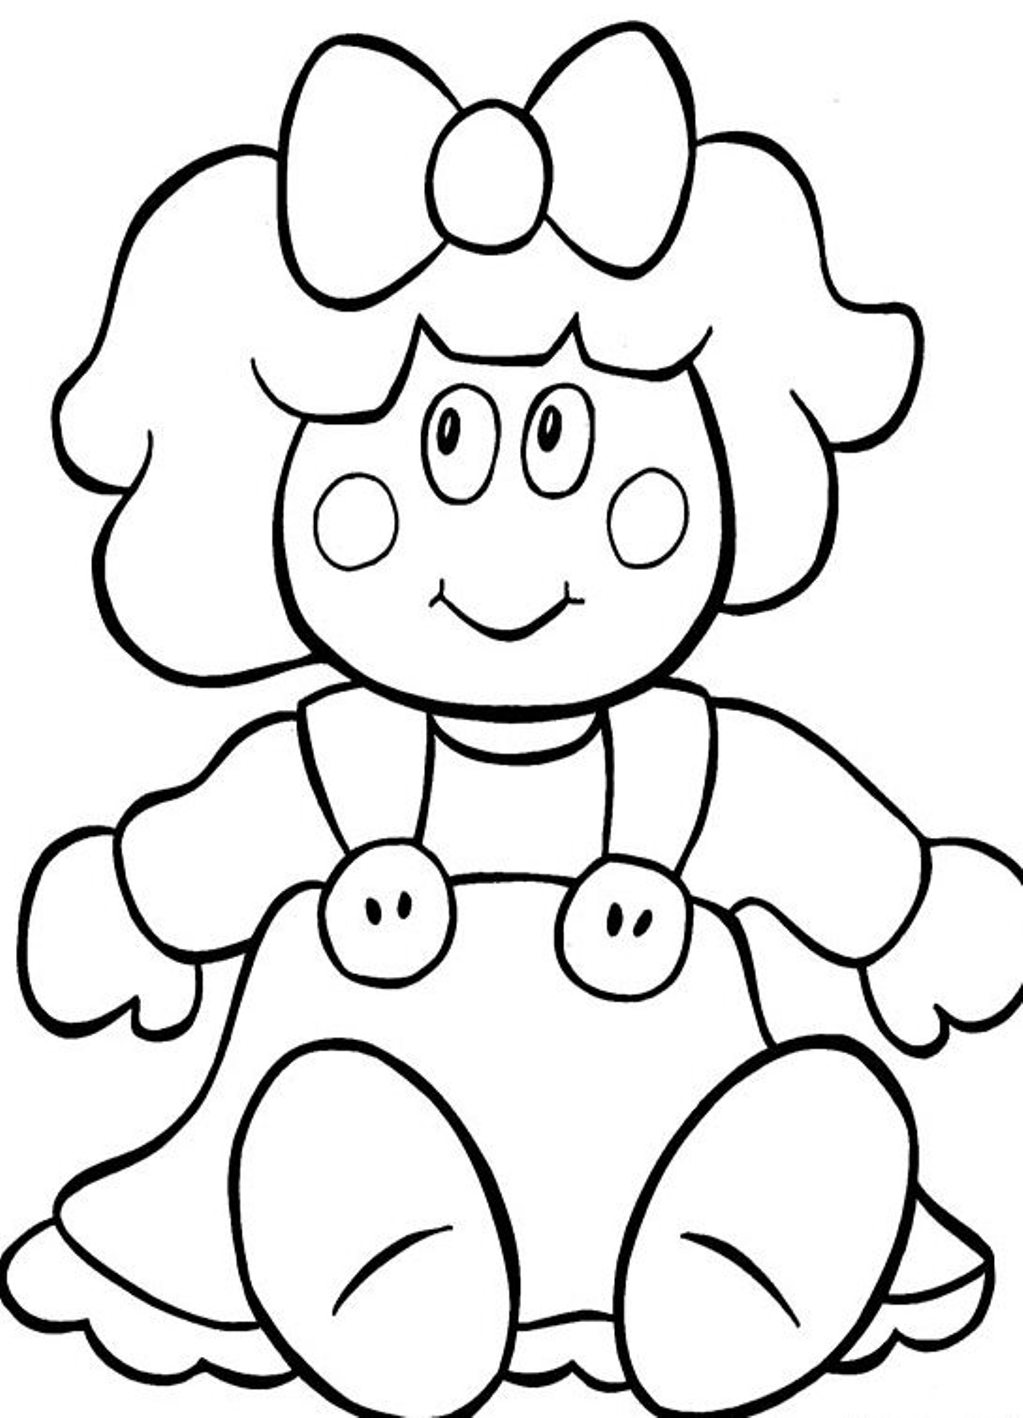 dolls coloring pages doll coloring pages to download and print for free pages dolls coloring